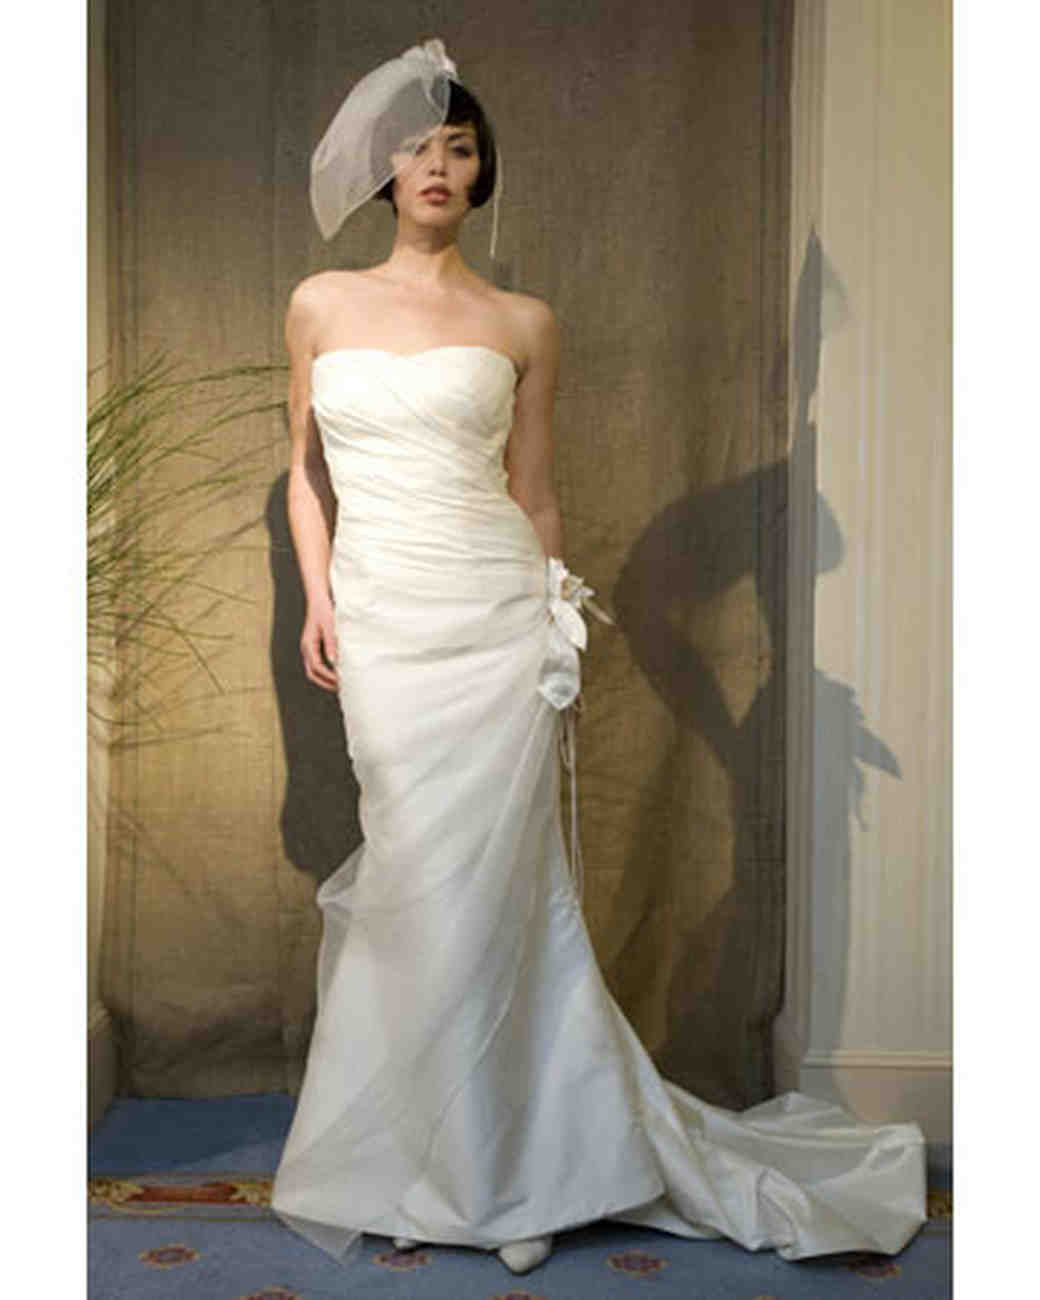 Trumpet Gowns from A-G, Fall 2008 Collections | Martha Stewart Weddings